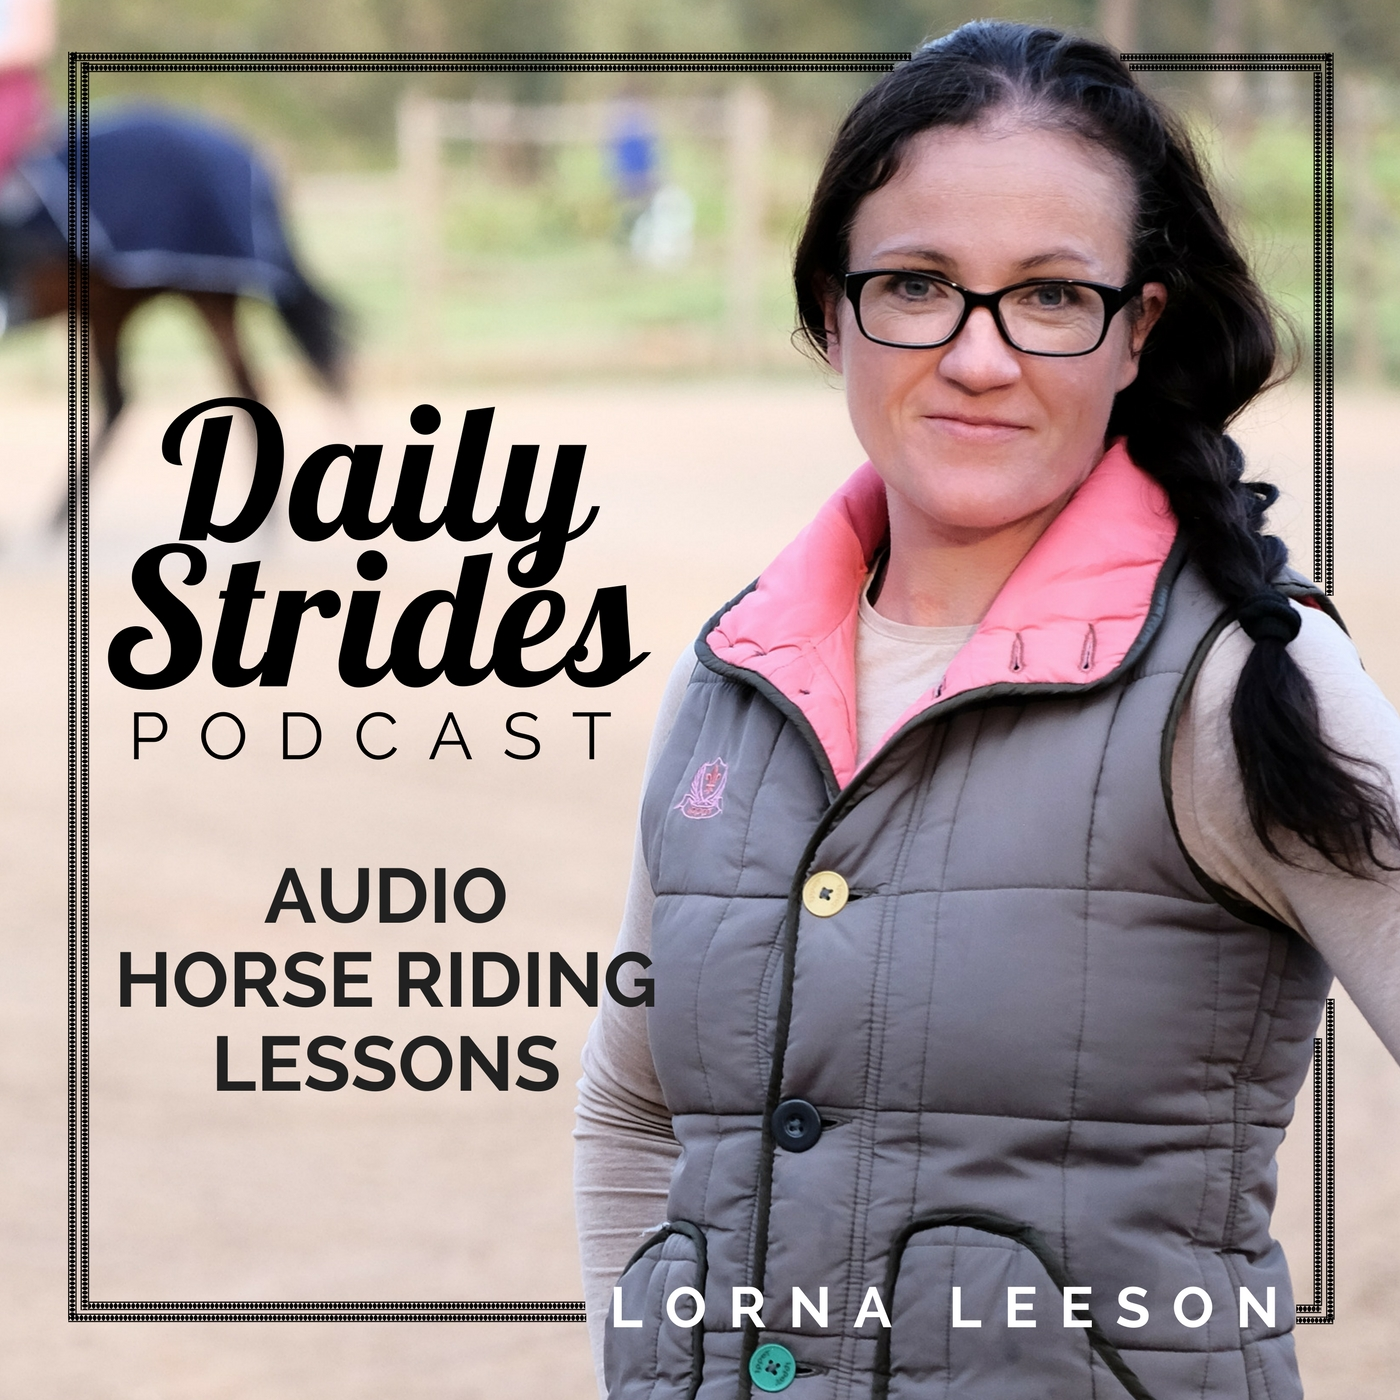 Daily Strides | Audio Horse Riding Lessons for Equestrians | Your Time; Your Arena; Your Horse | Horseback Riding Podcast